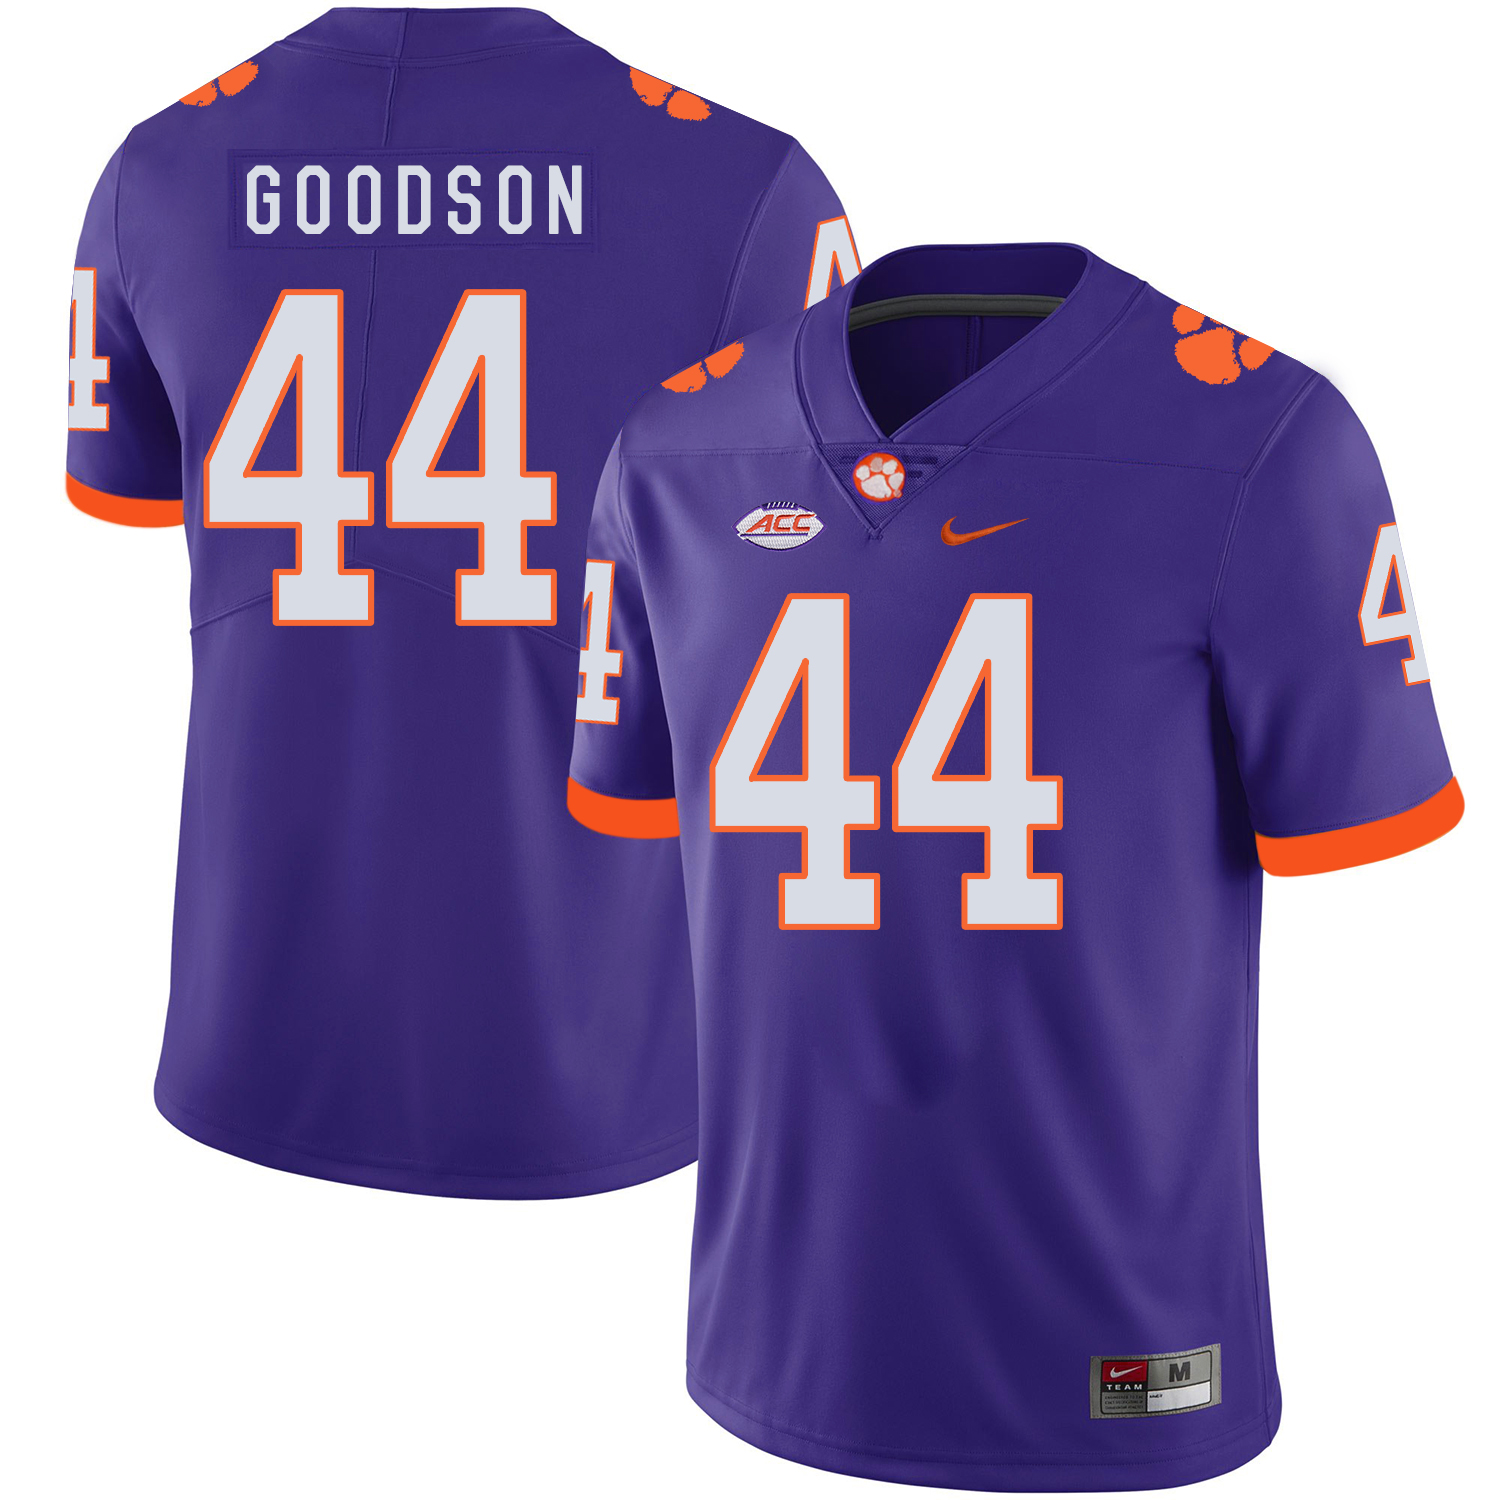 Clemson Tigers 44 B.J. Goodson Purple Nike College Football Jersey